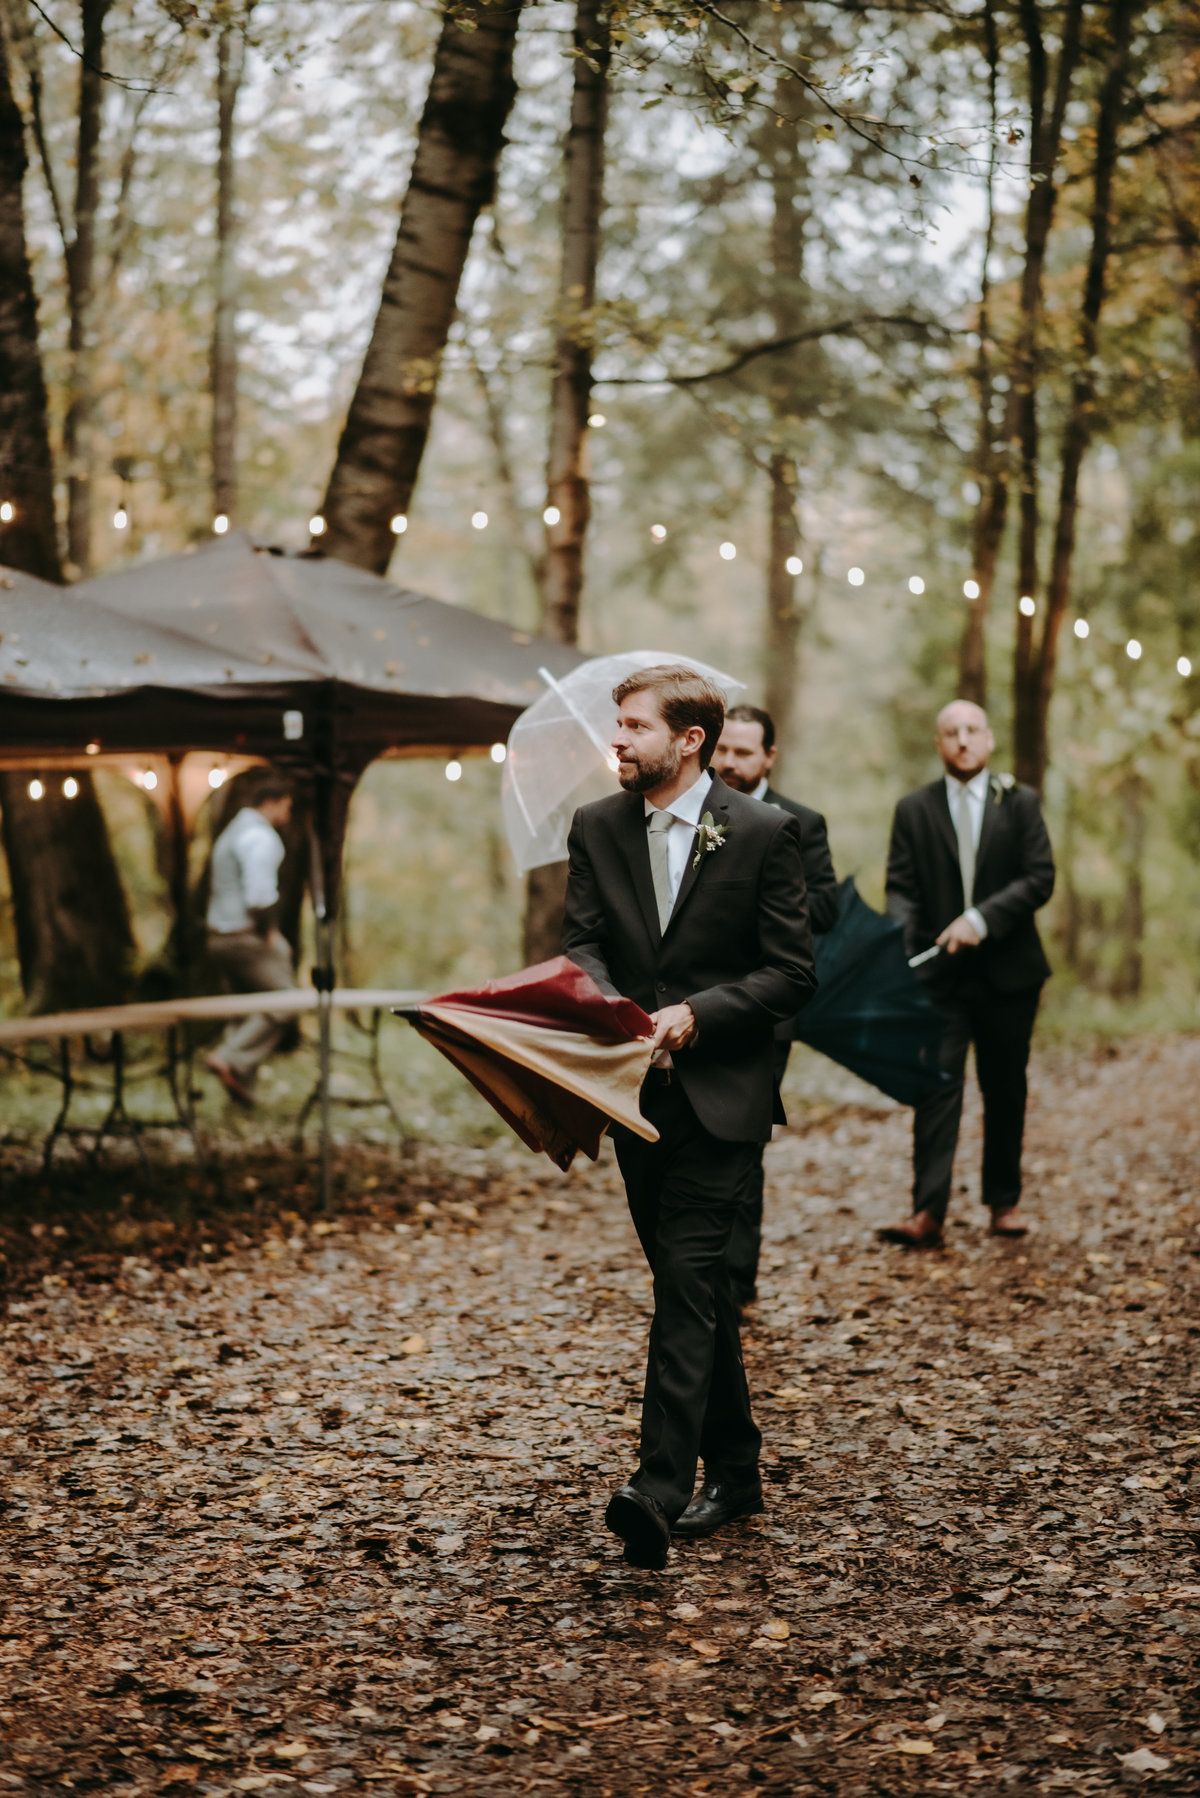 CatskillsJulietandEric2019WeddingPhotography (43 of 213)